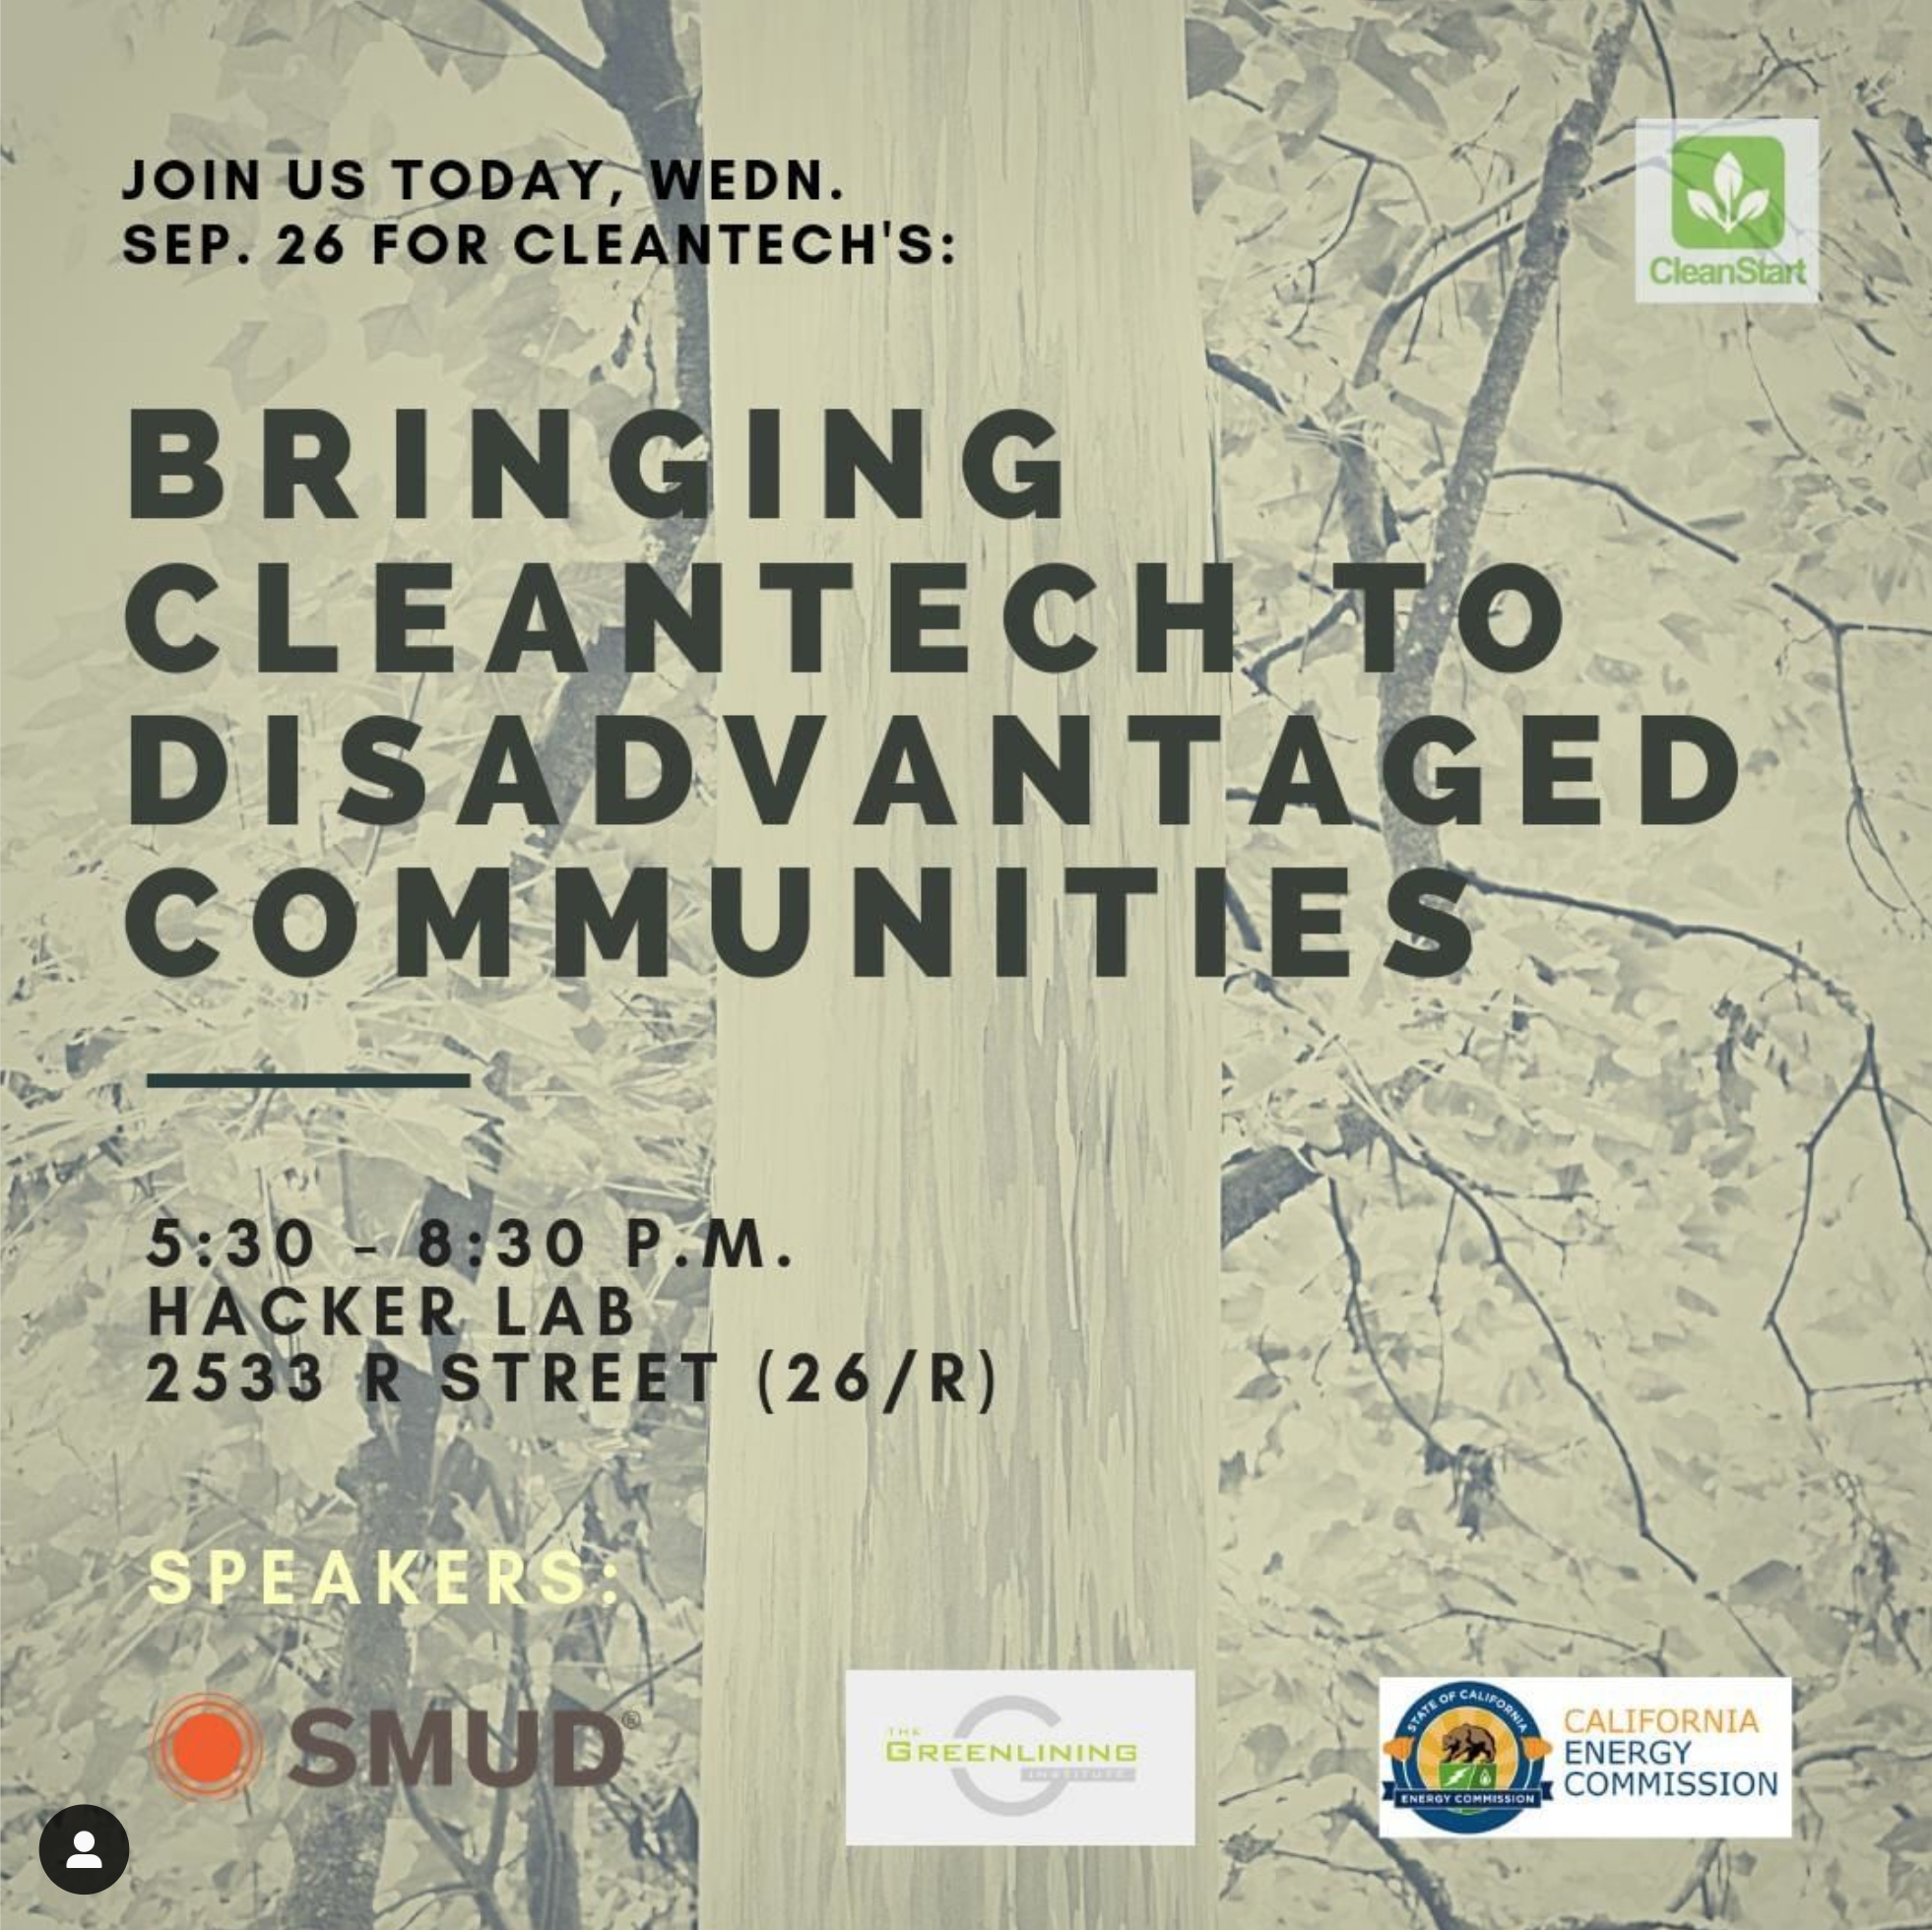 Cleanstart green energy meetup